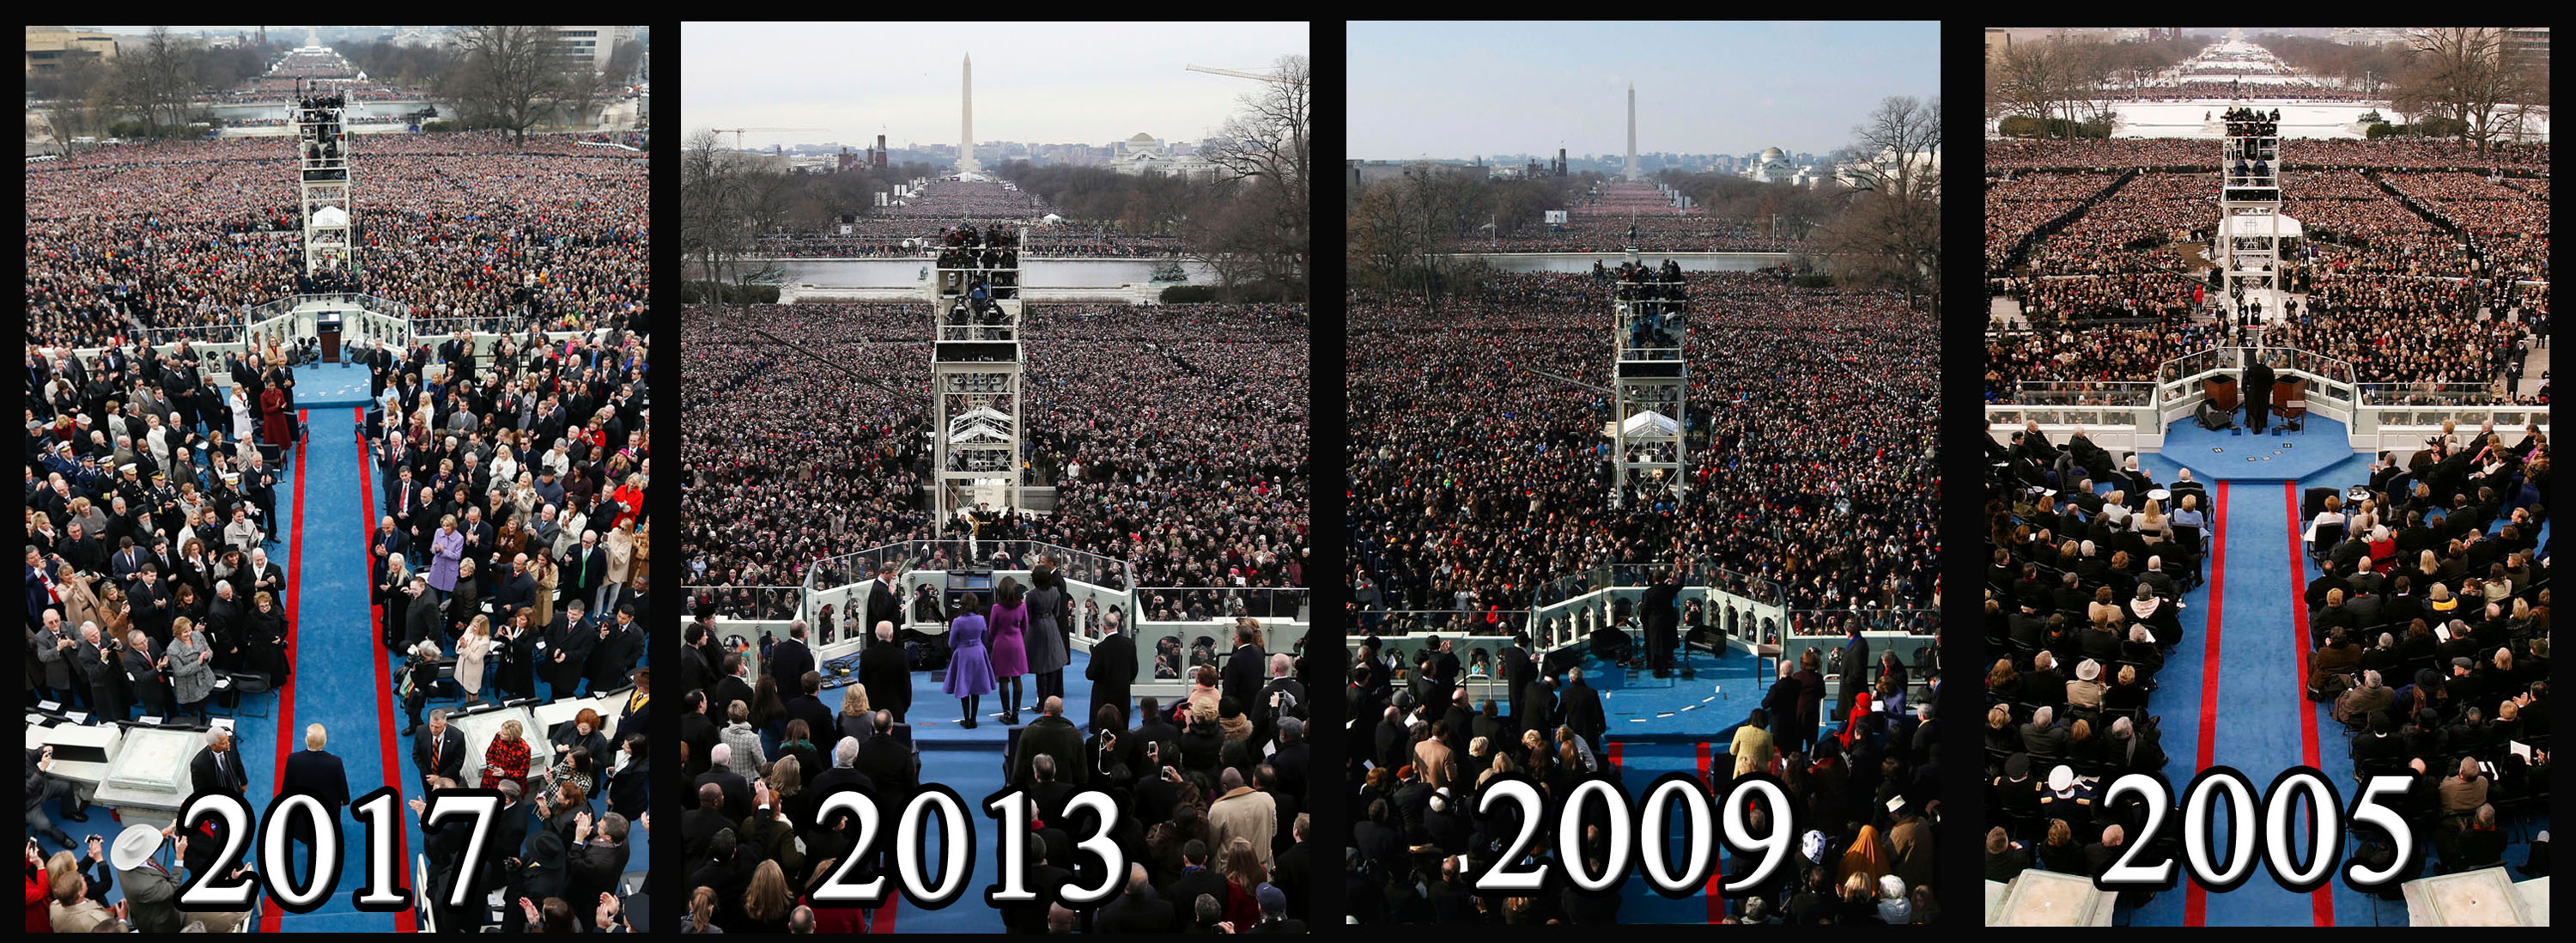 How Did Trump S Inauguration Crowd Compare Photos Wtop,4 Bedroom Mobile Home For Sale Alberta